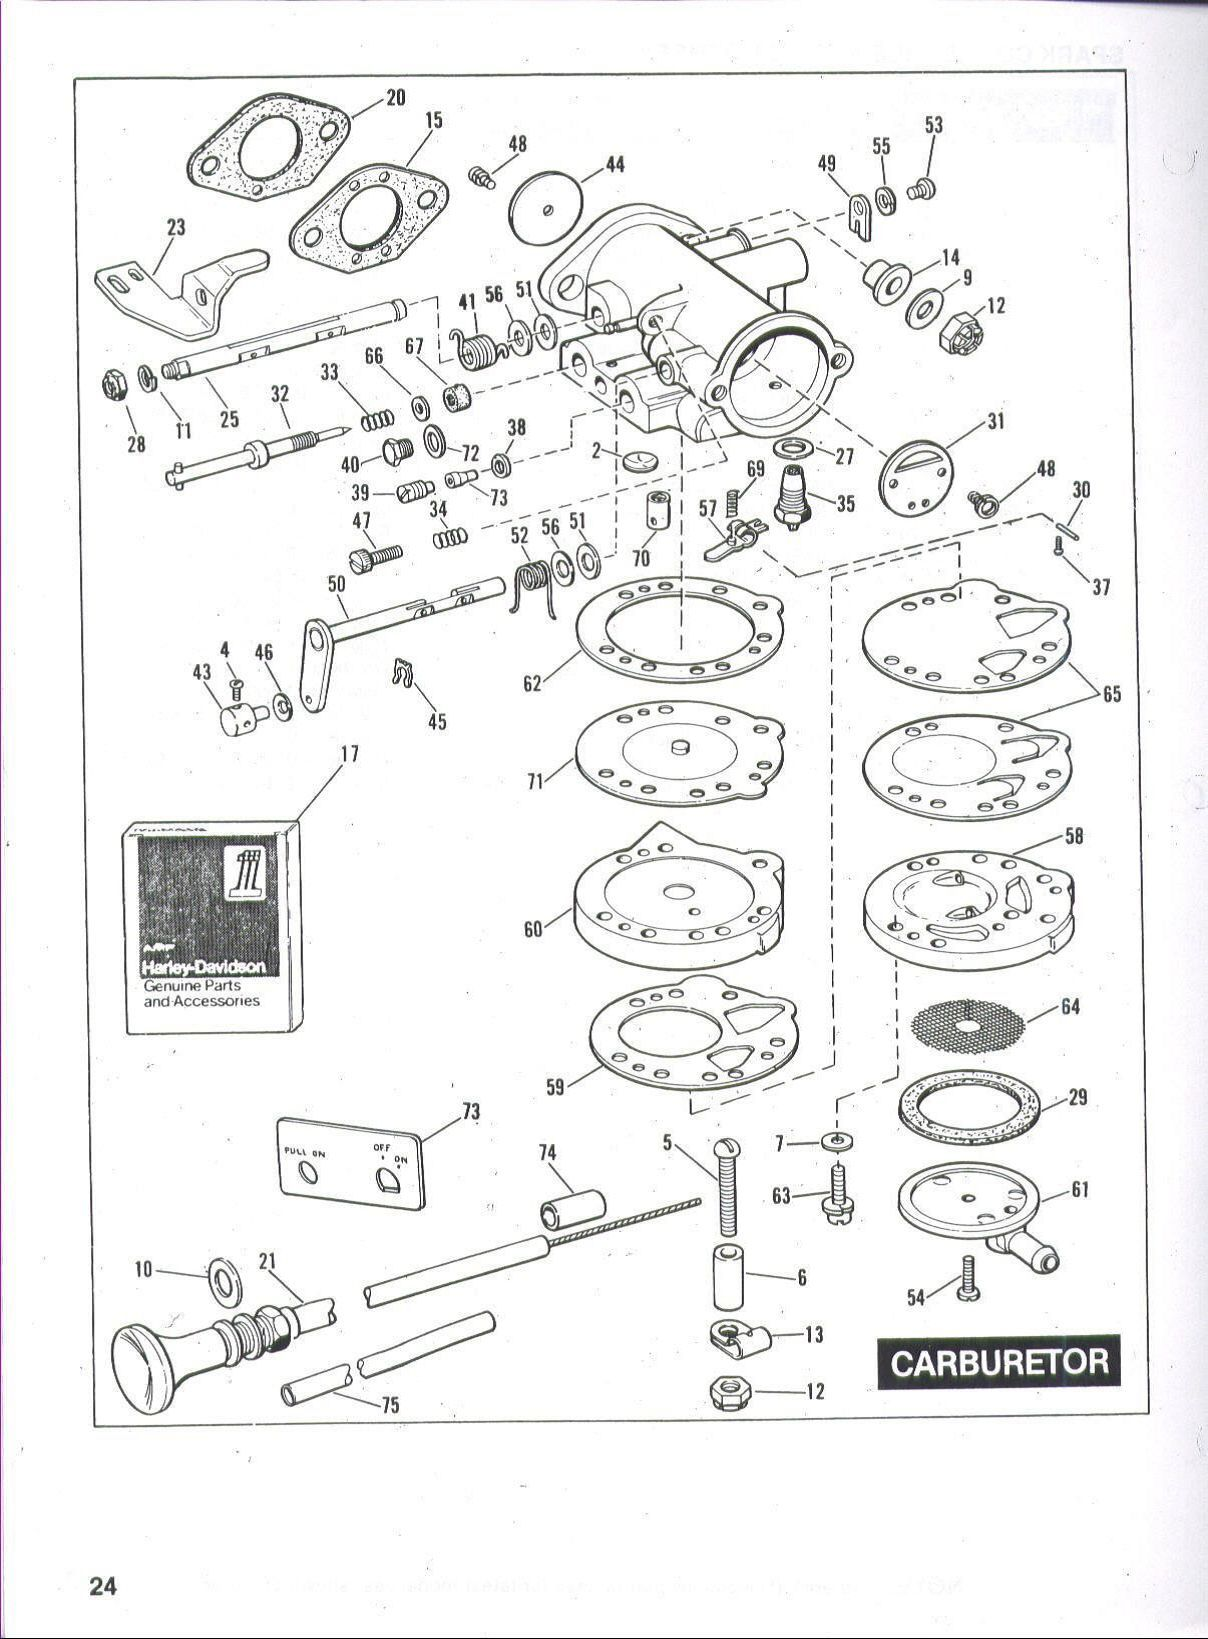 harley davidson golf cart carburetor diagram utv stuff golf ez go gas engine carborator diagram [ 1208 x 1639 Pixel ]